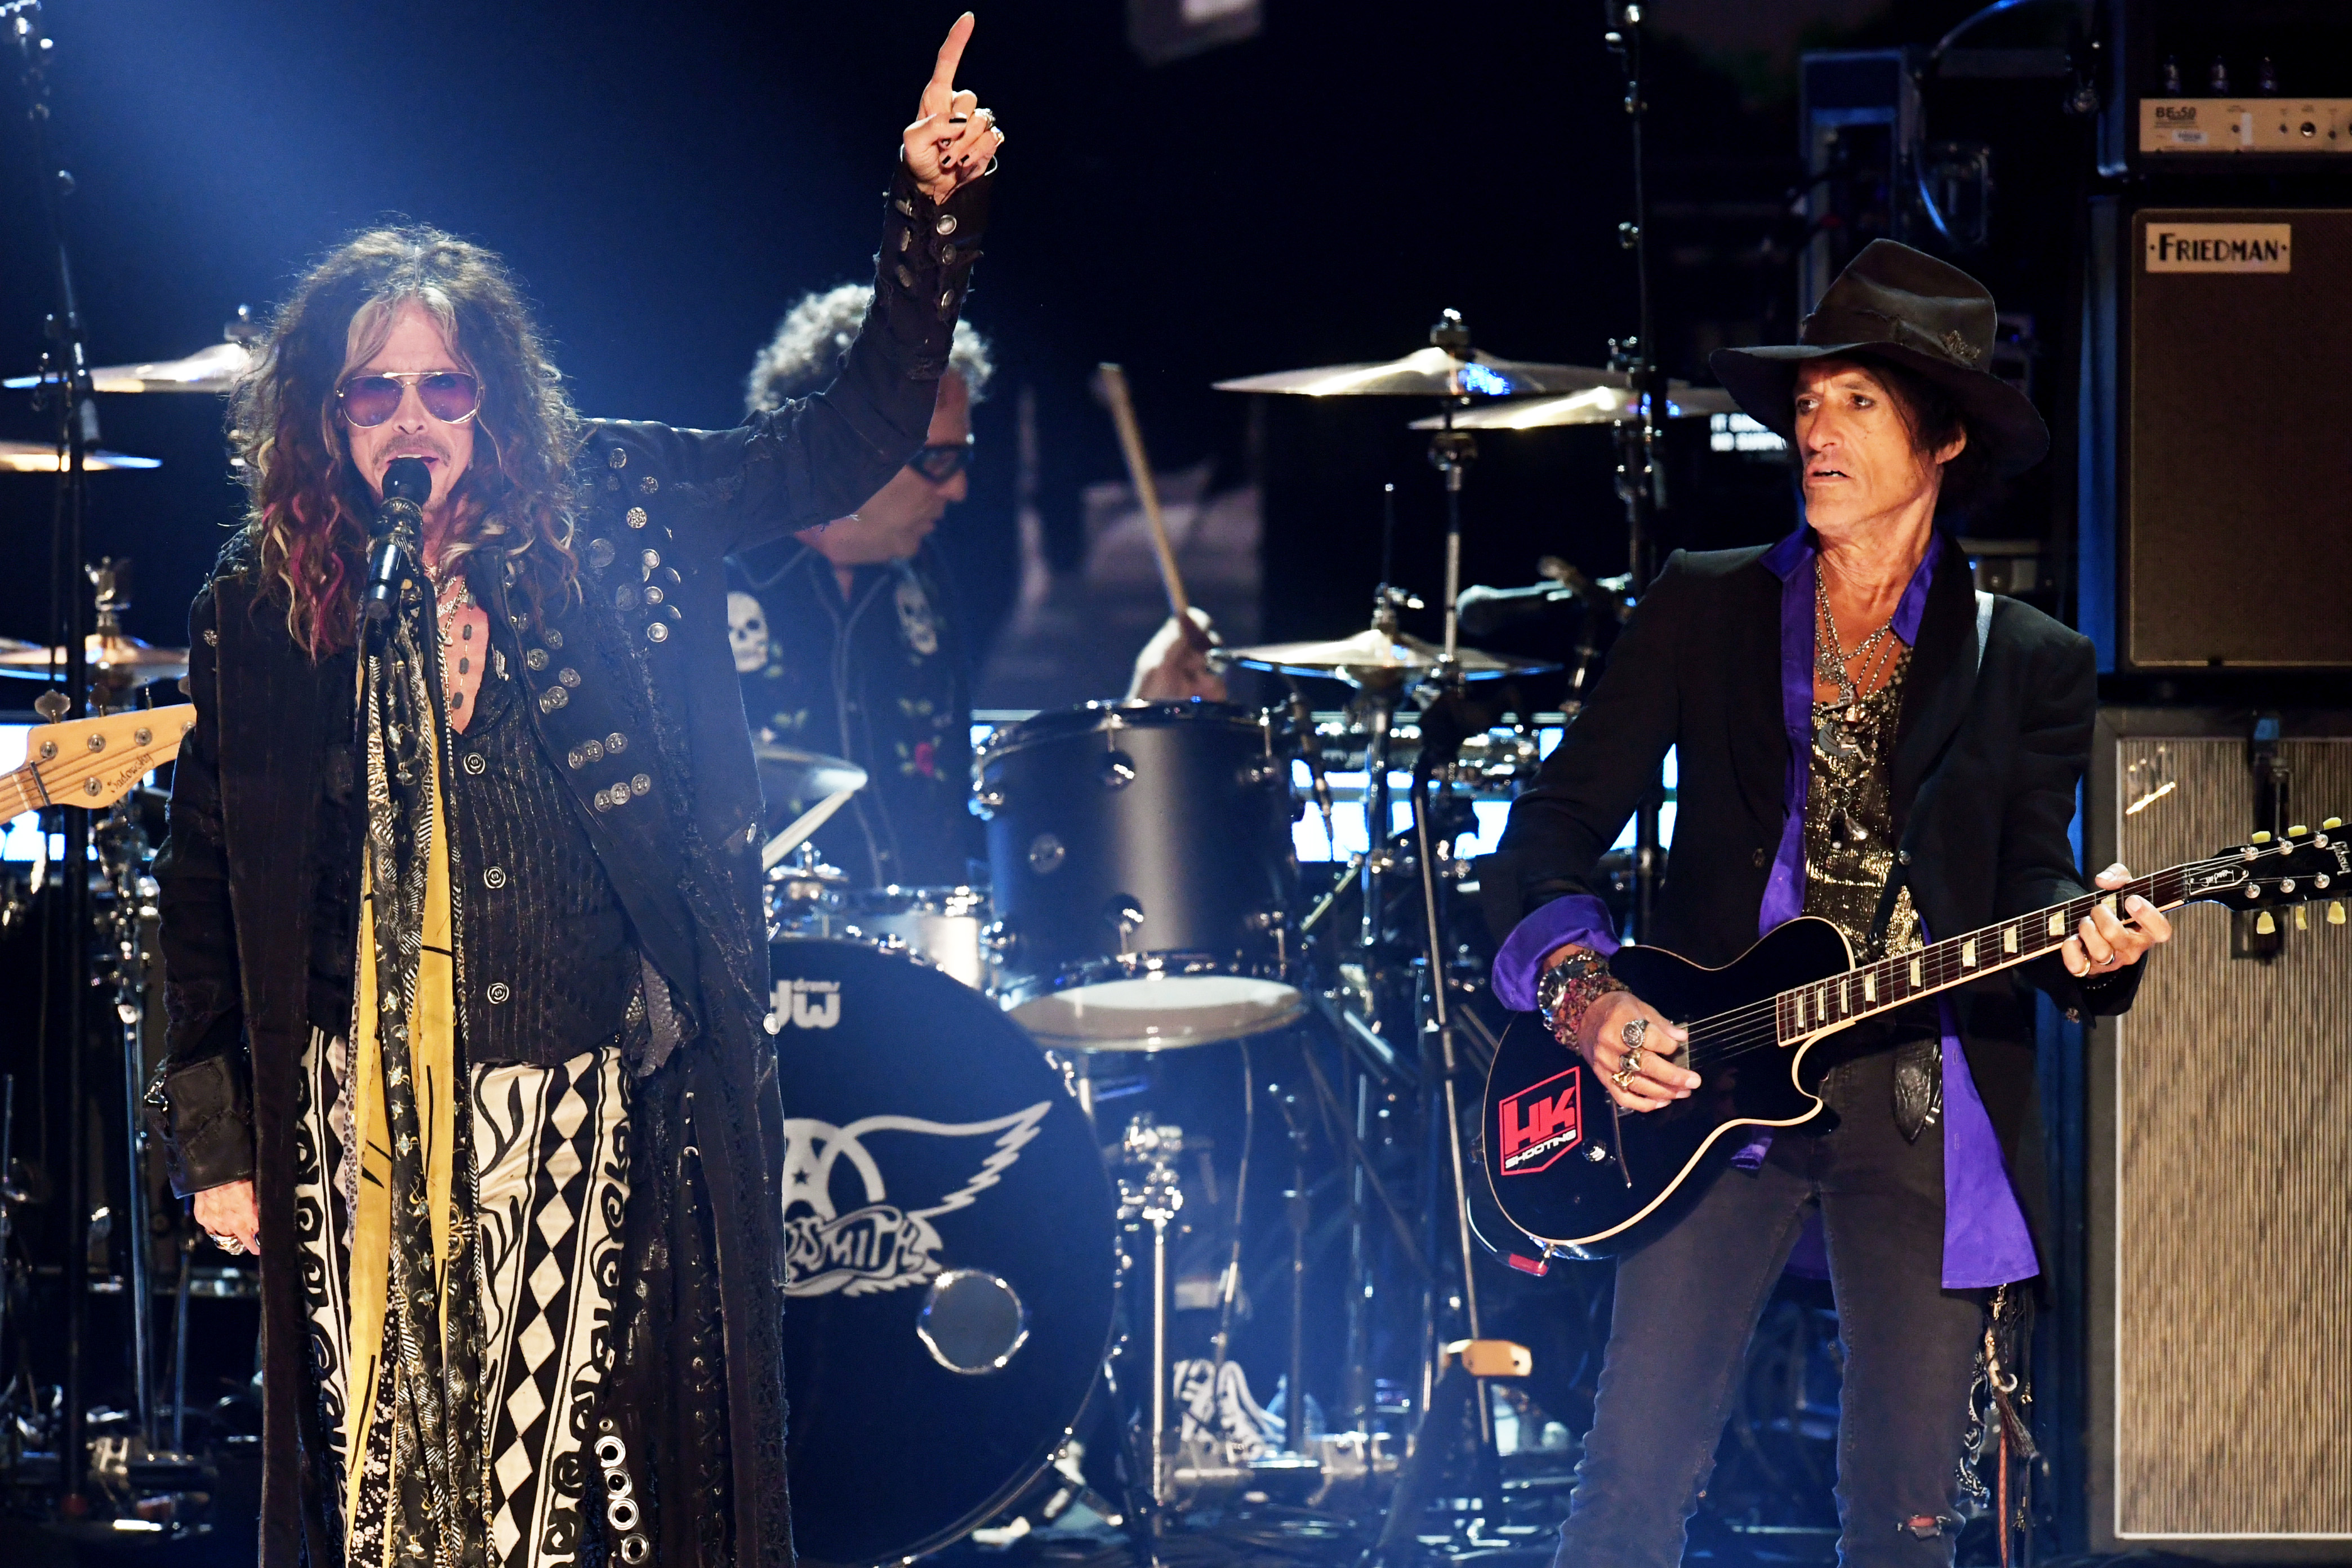 Aerosmith live in concert on stage